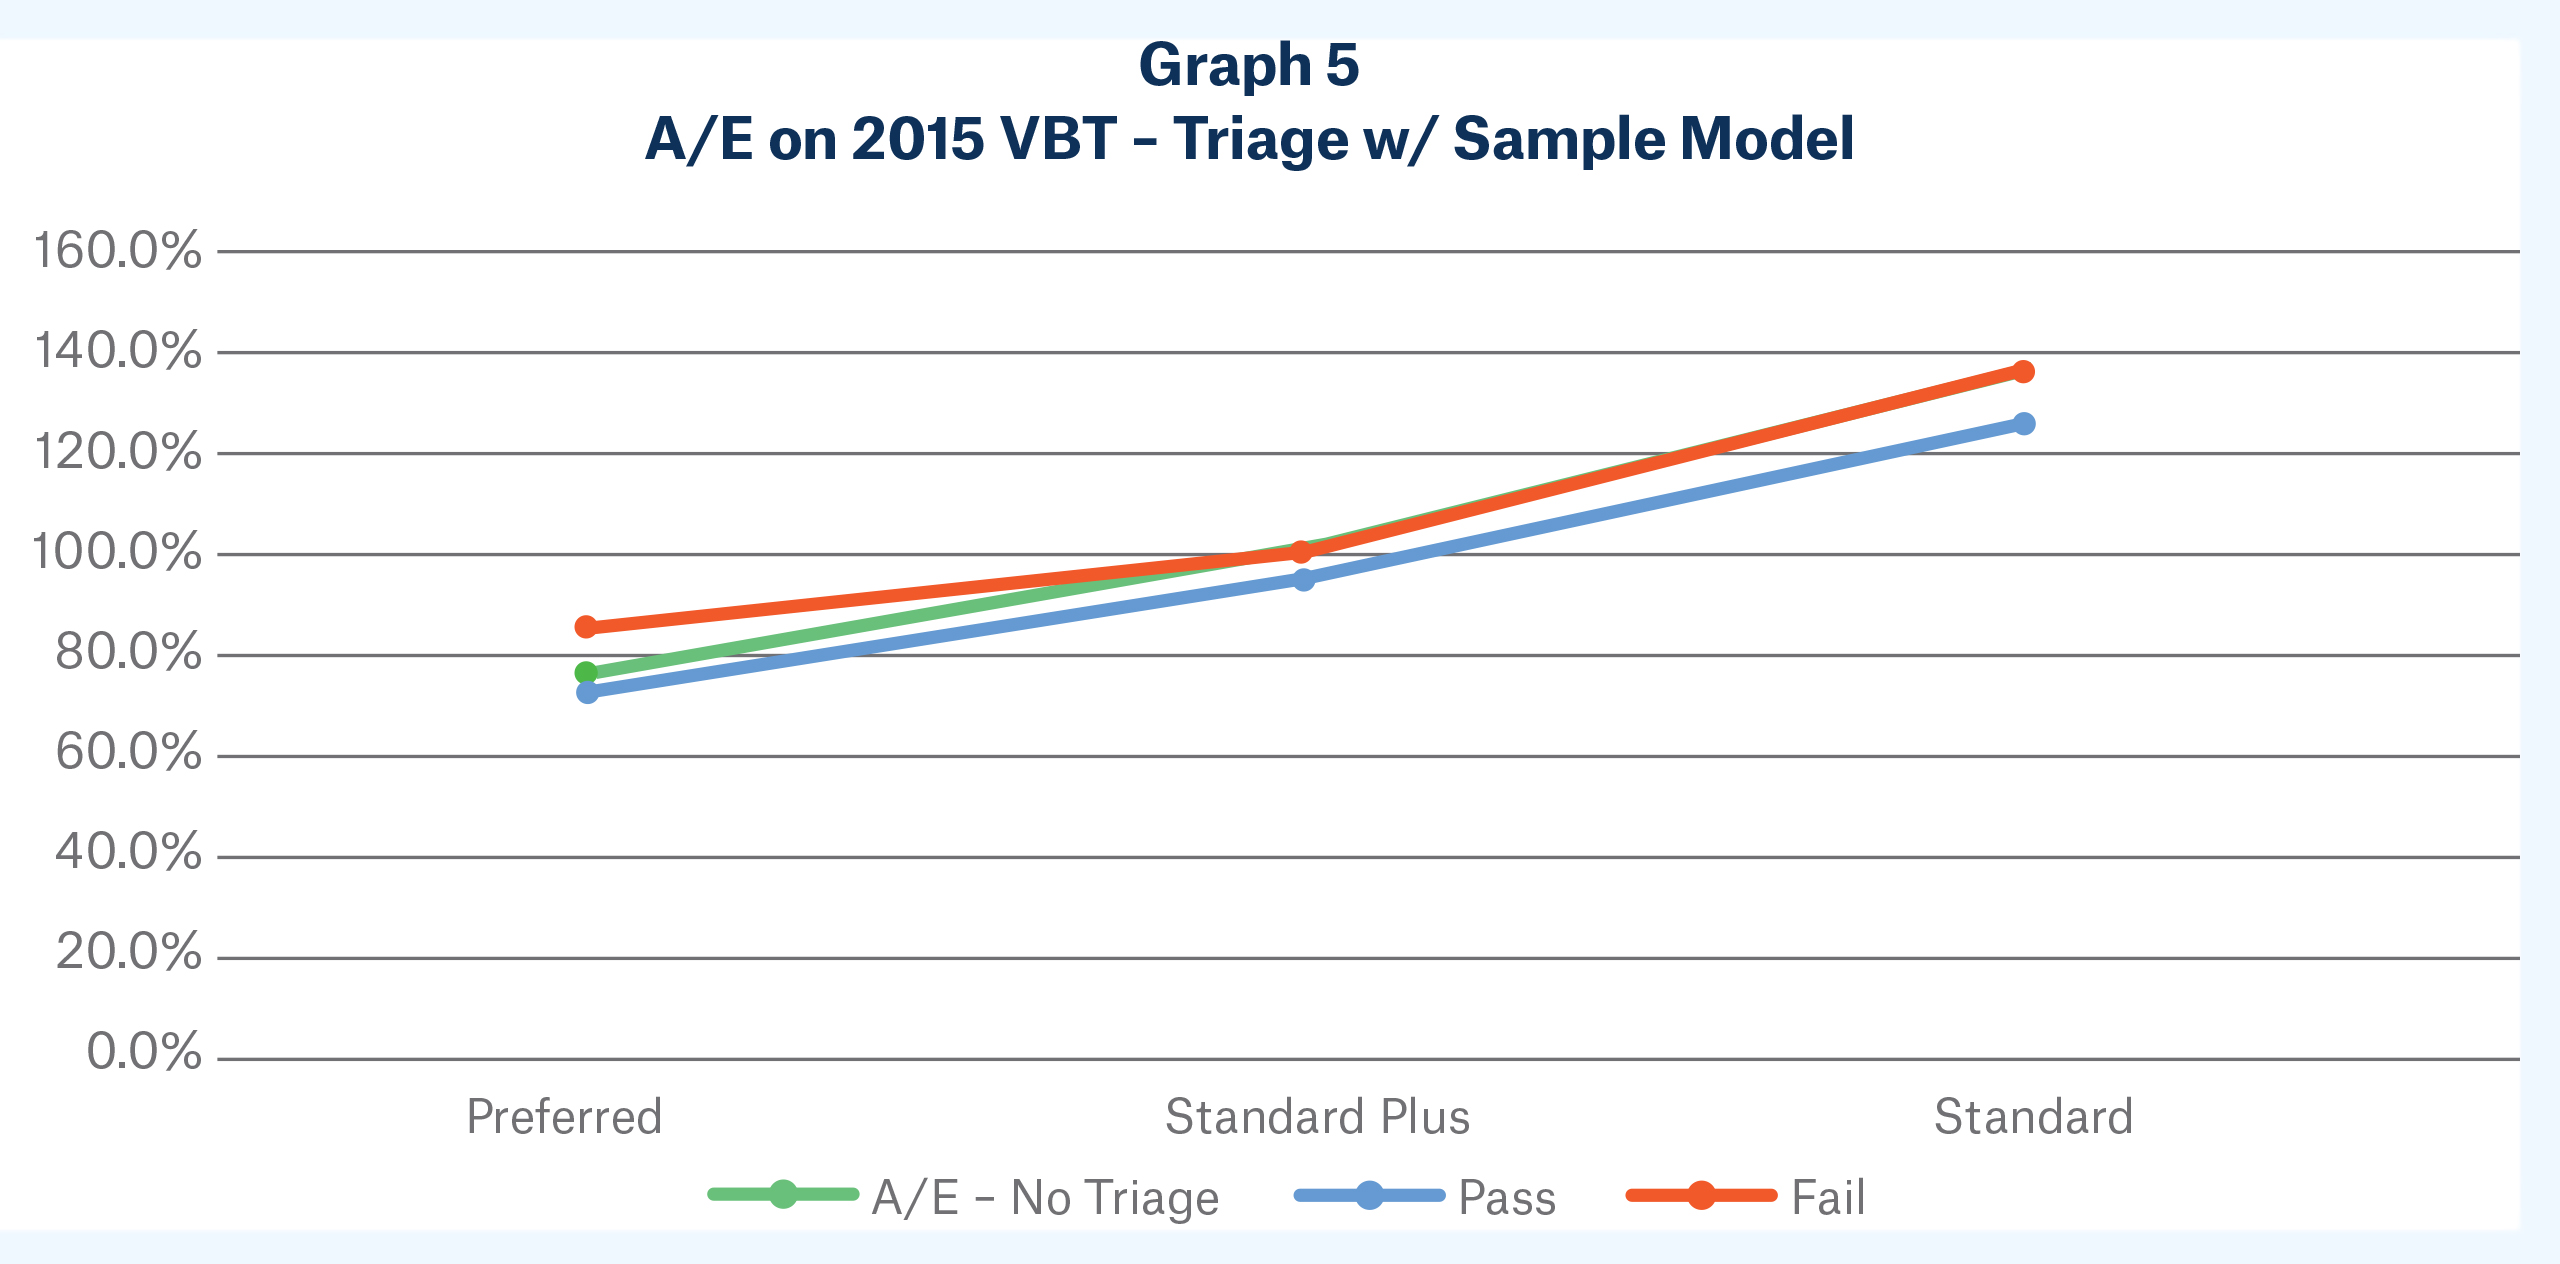 Graph 5 - A/E pm 2015 VBT - Triage w/Sample Model